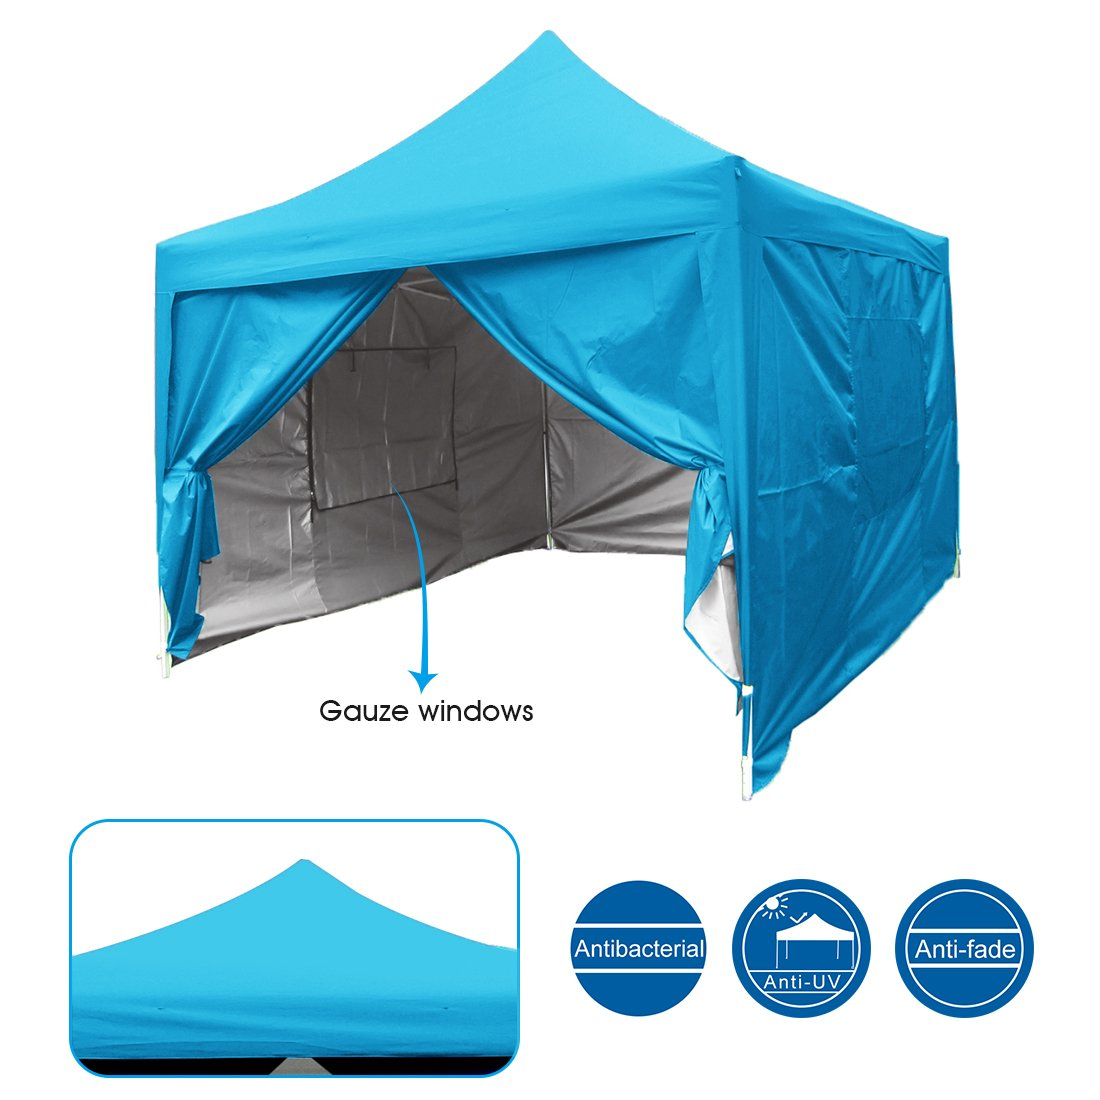 Quictent Privacy 8'x8' Blue EZ Pop Up Party Tent Canopy Gazebo Mesh Curtain Waterproof